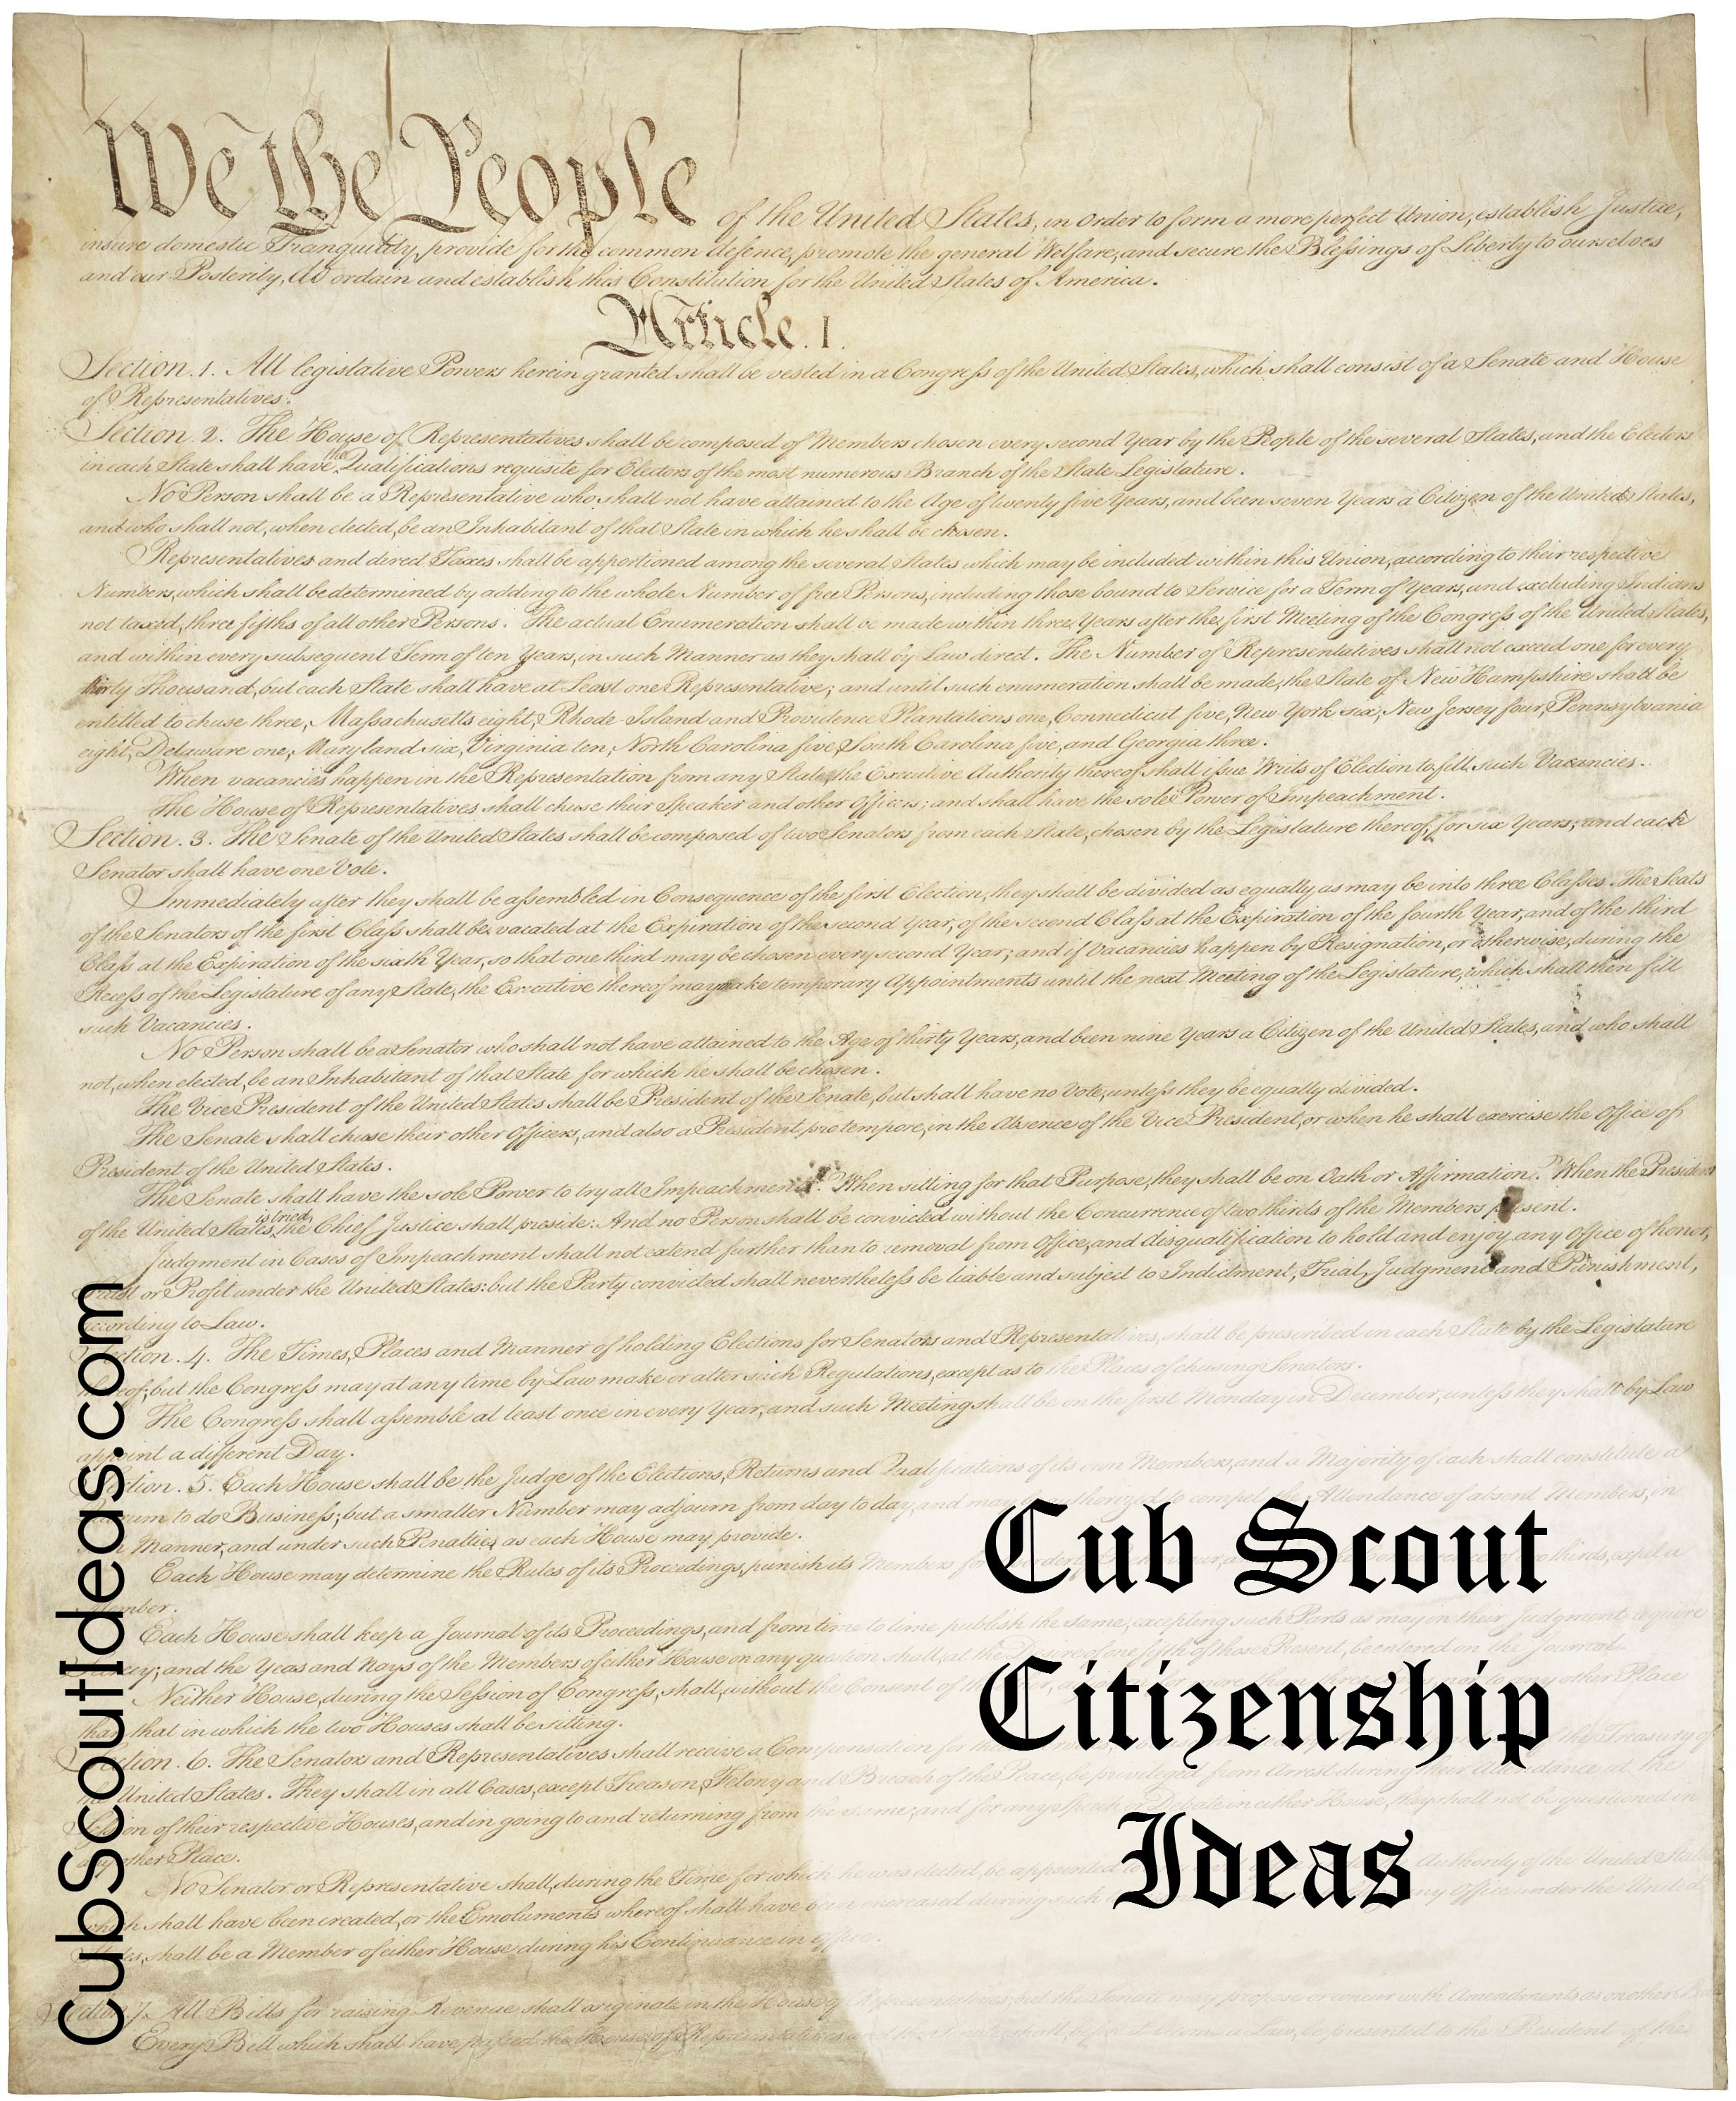 Cub Scout Citizen Rights and Responsibilities | Cub Scout Ideas